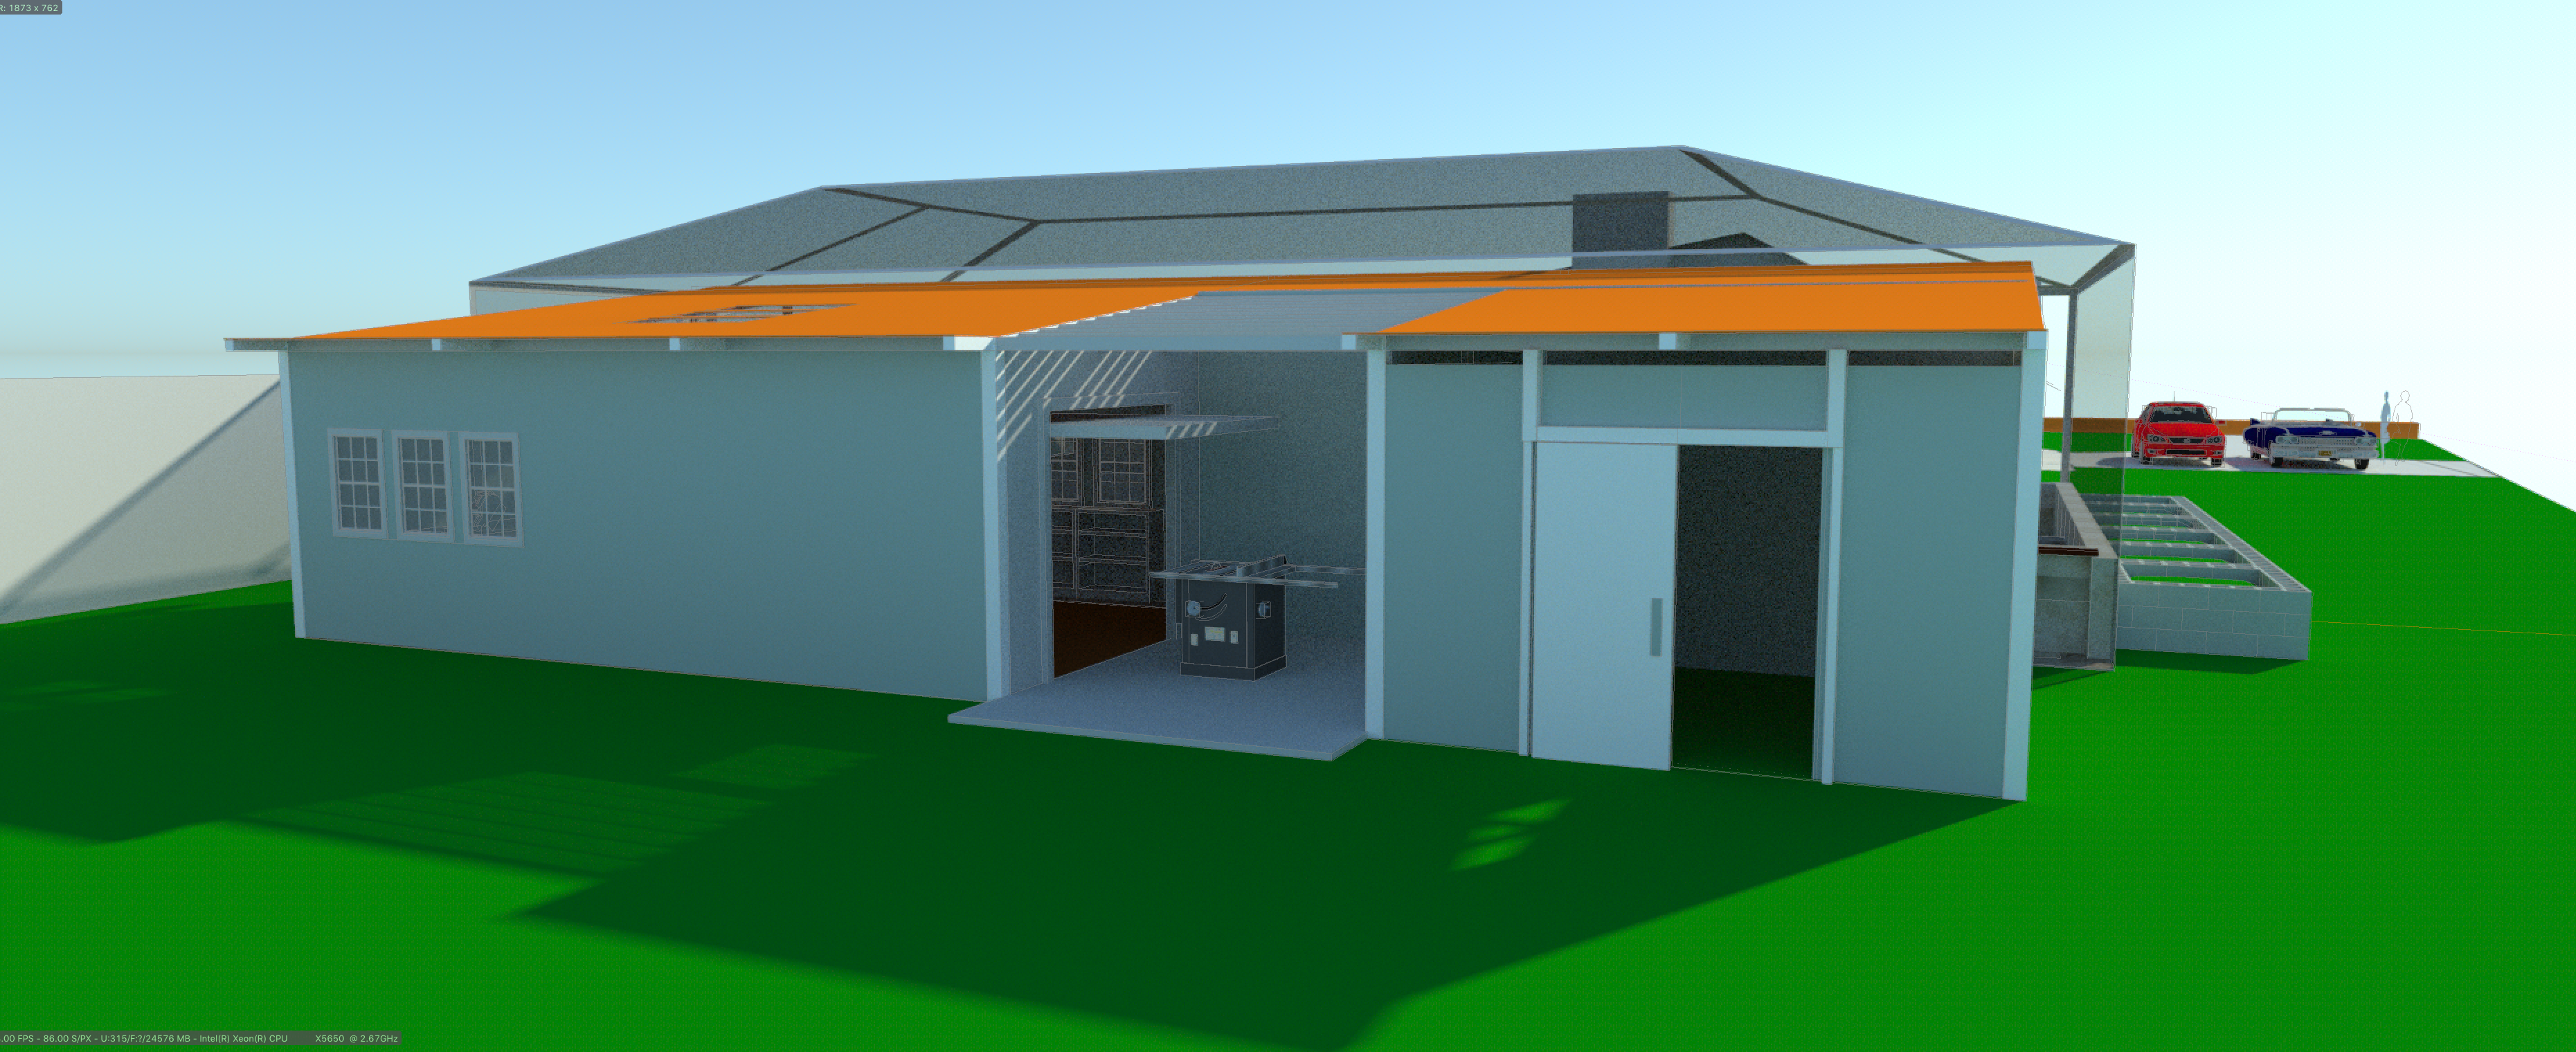 Rear view of studio / storage area showing the proposed open air work space...